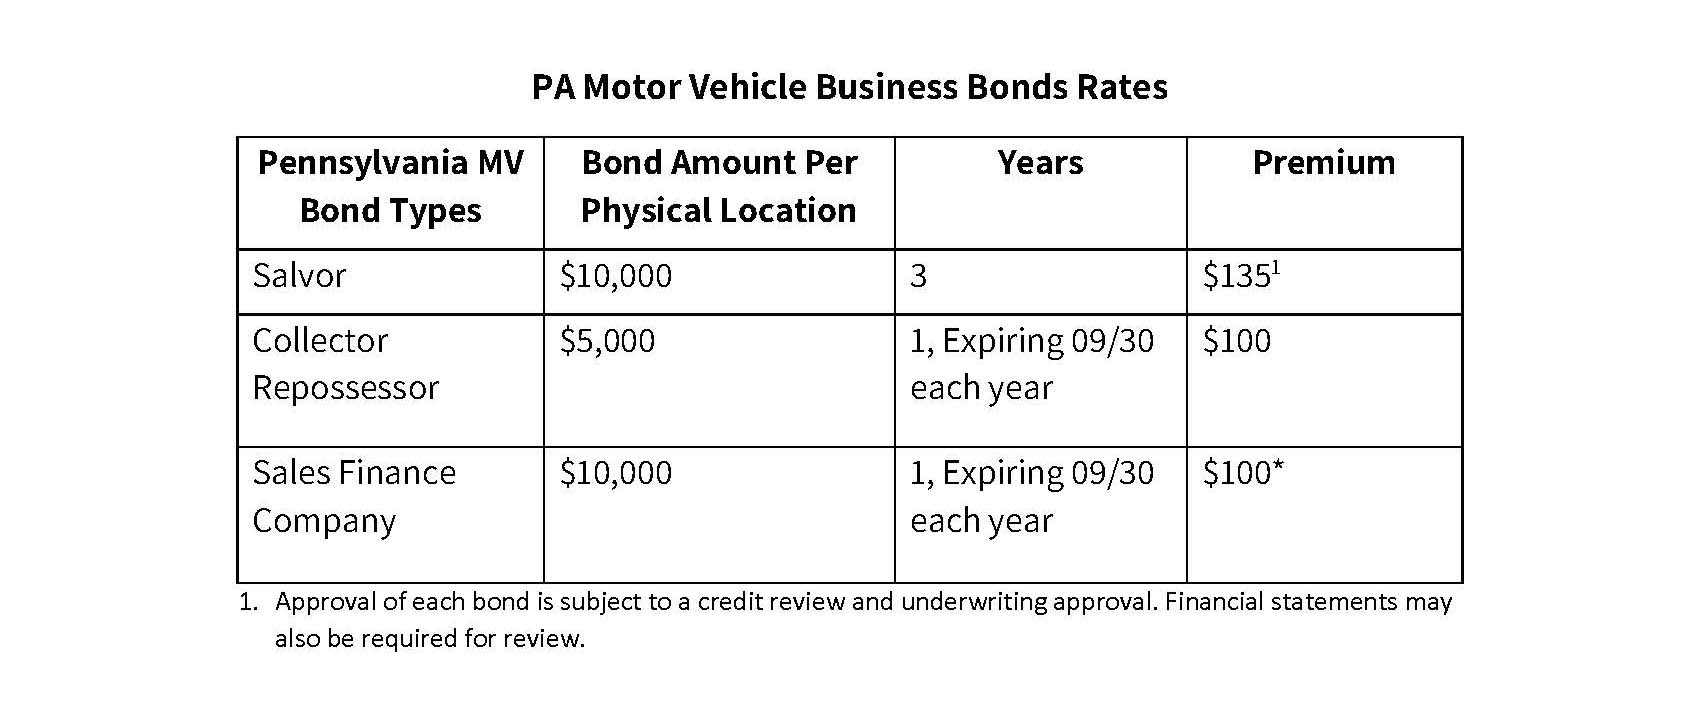 PA-Motor-Vehicle-Business-Bonds-Rate-Table